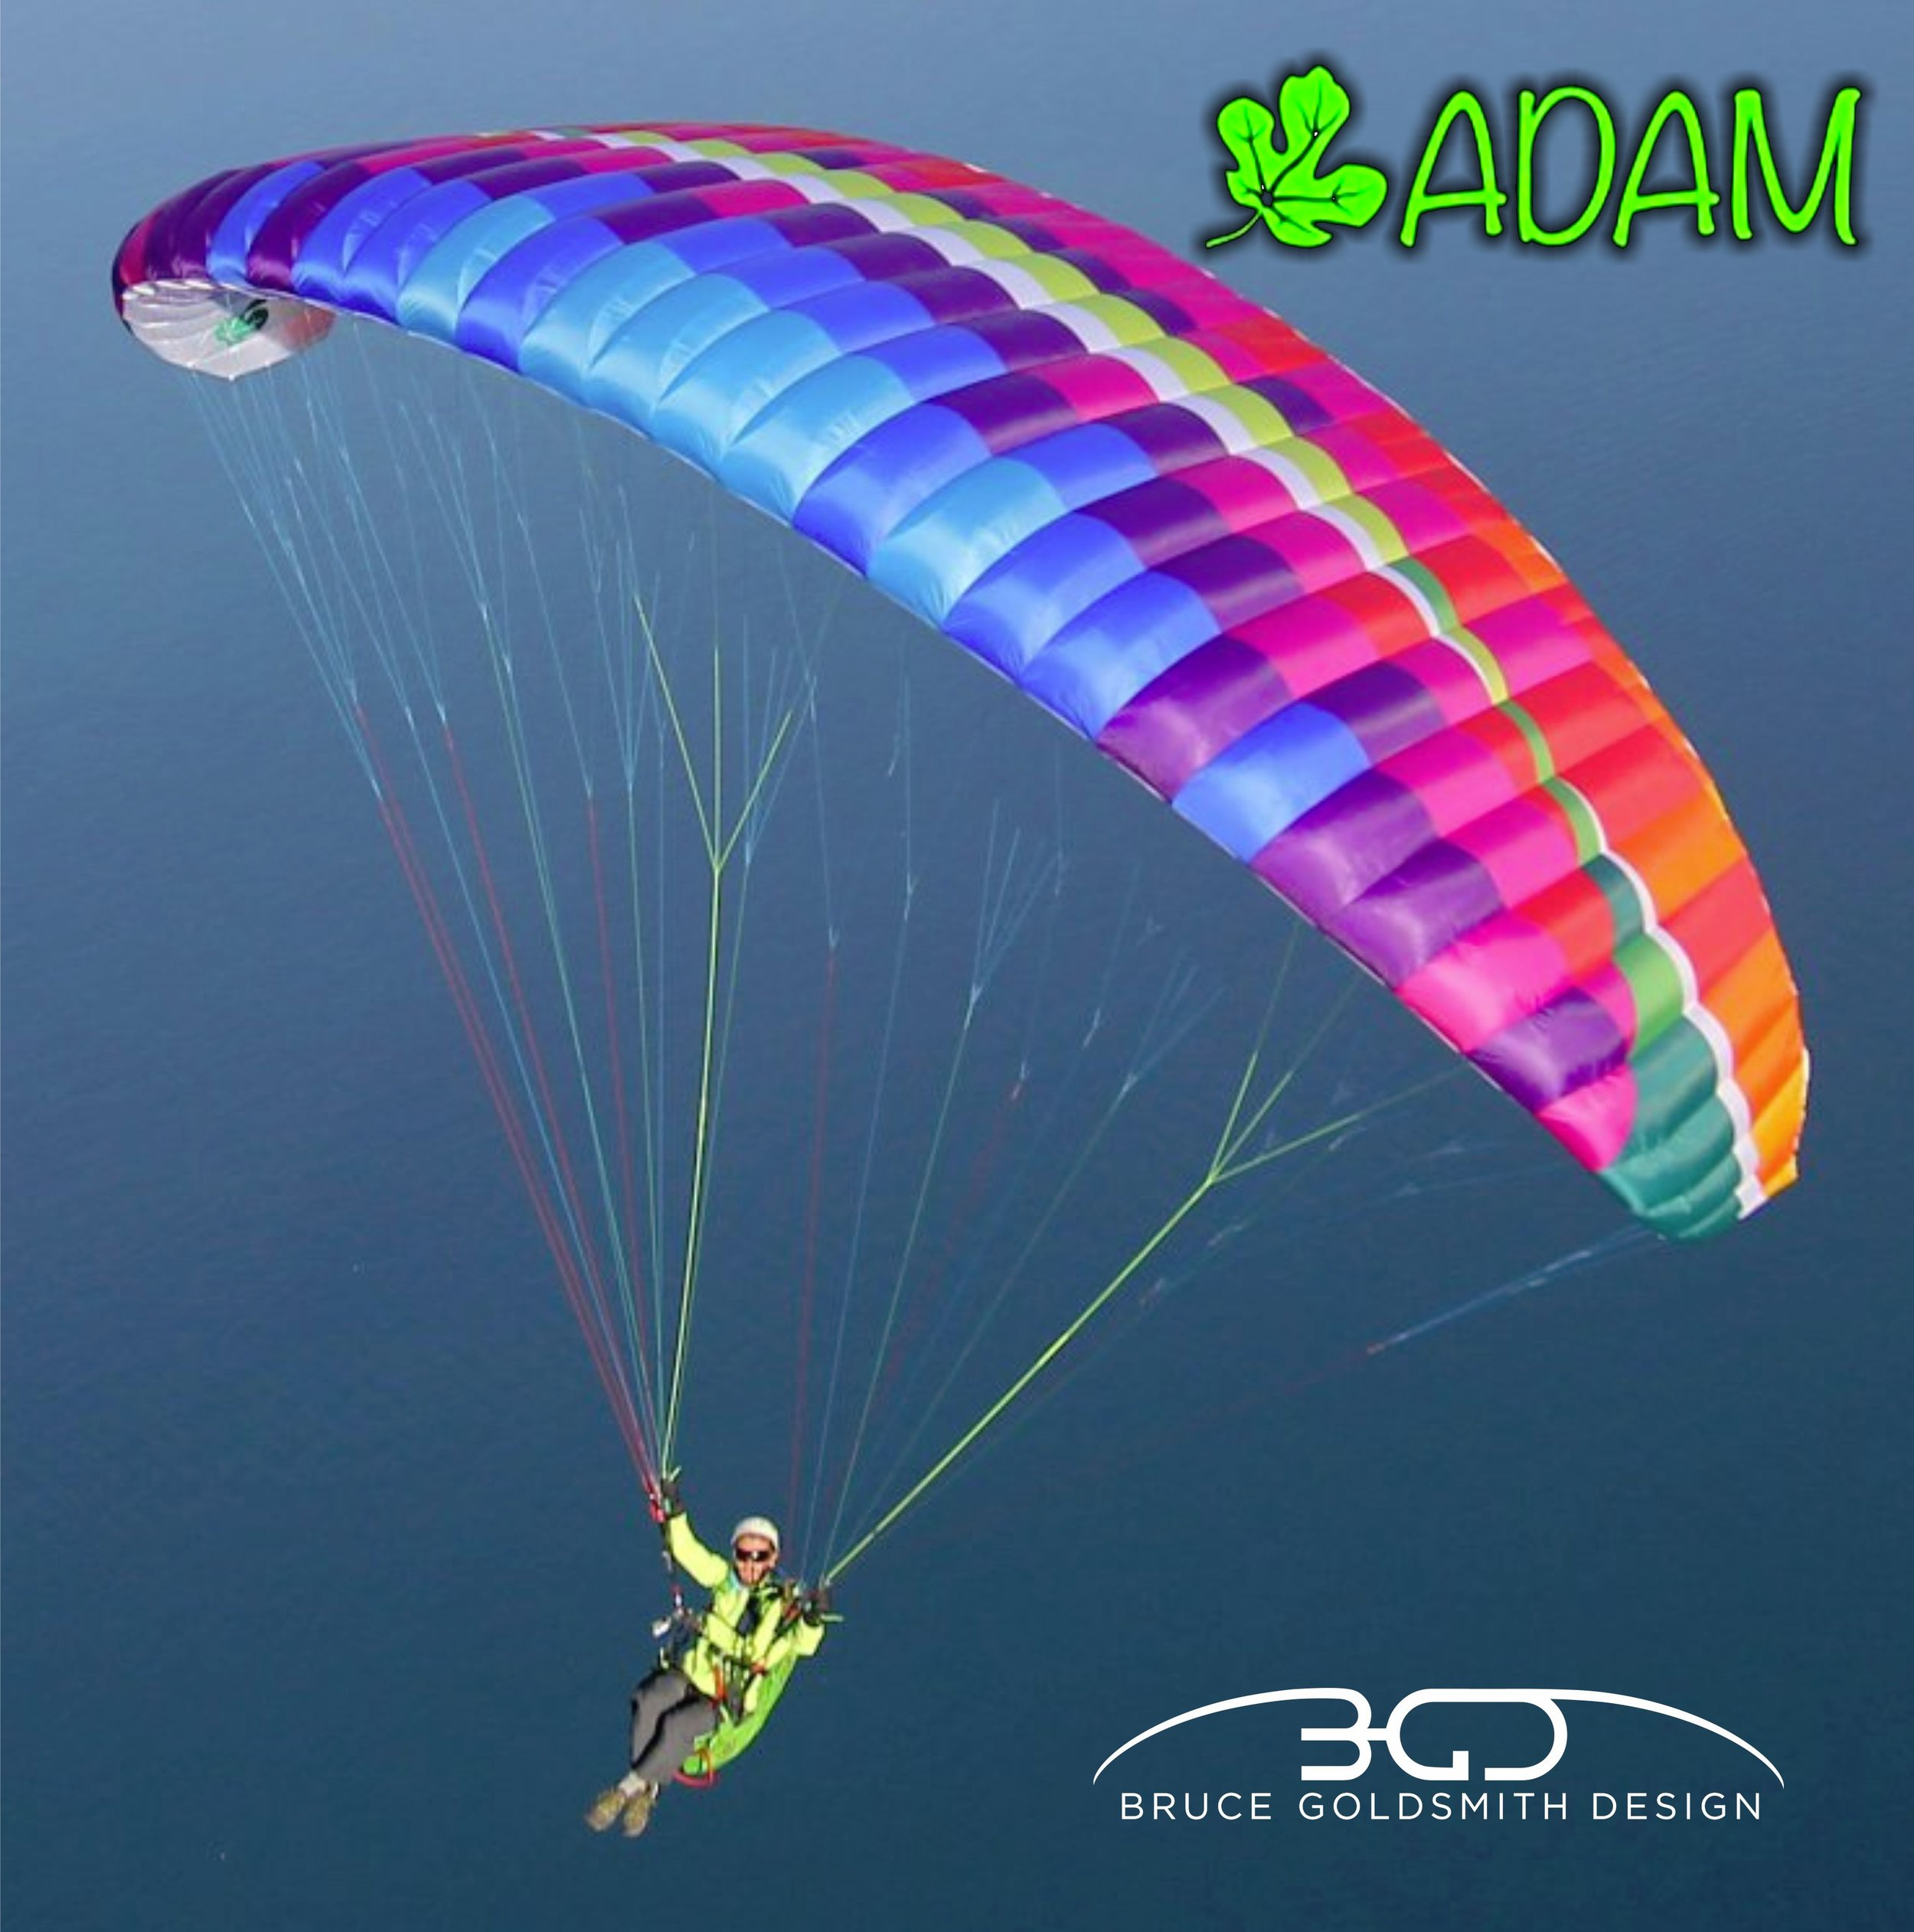 BGD Adam — Skywalk Paragliding School